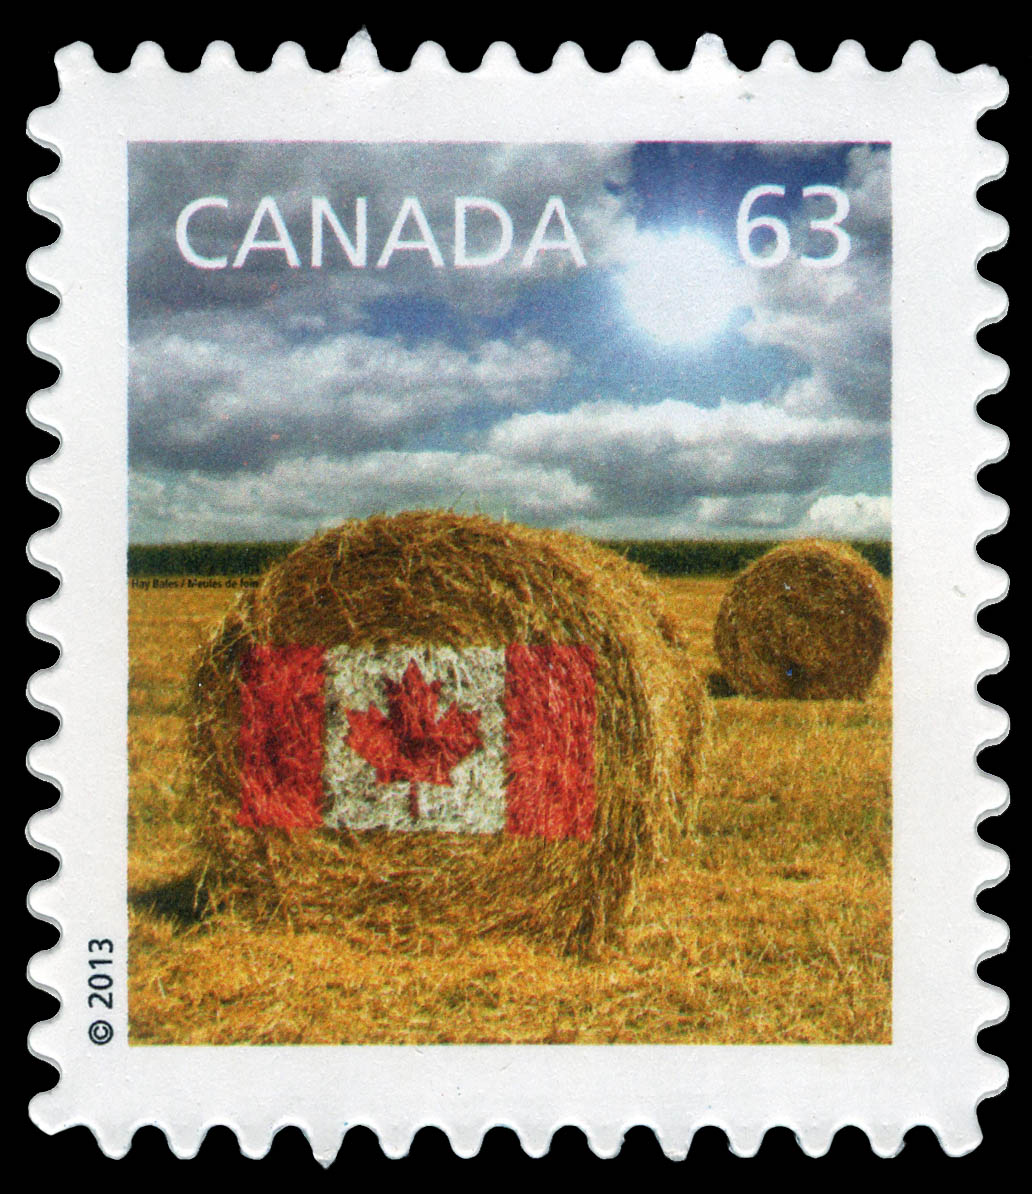 Prairie Hay Bale Flag Design Canada Postage Stamp